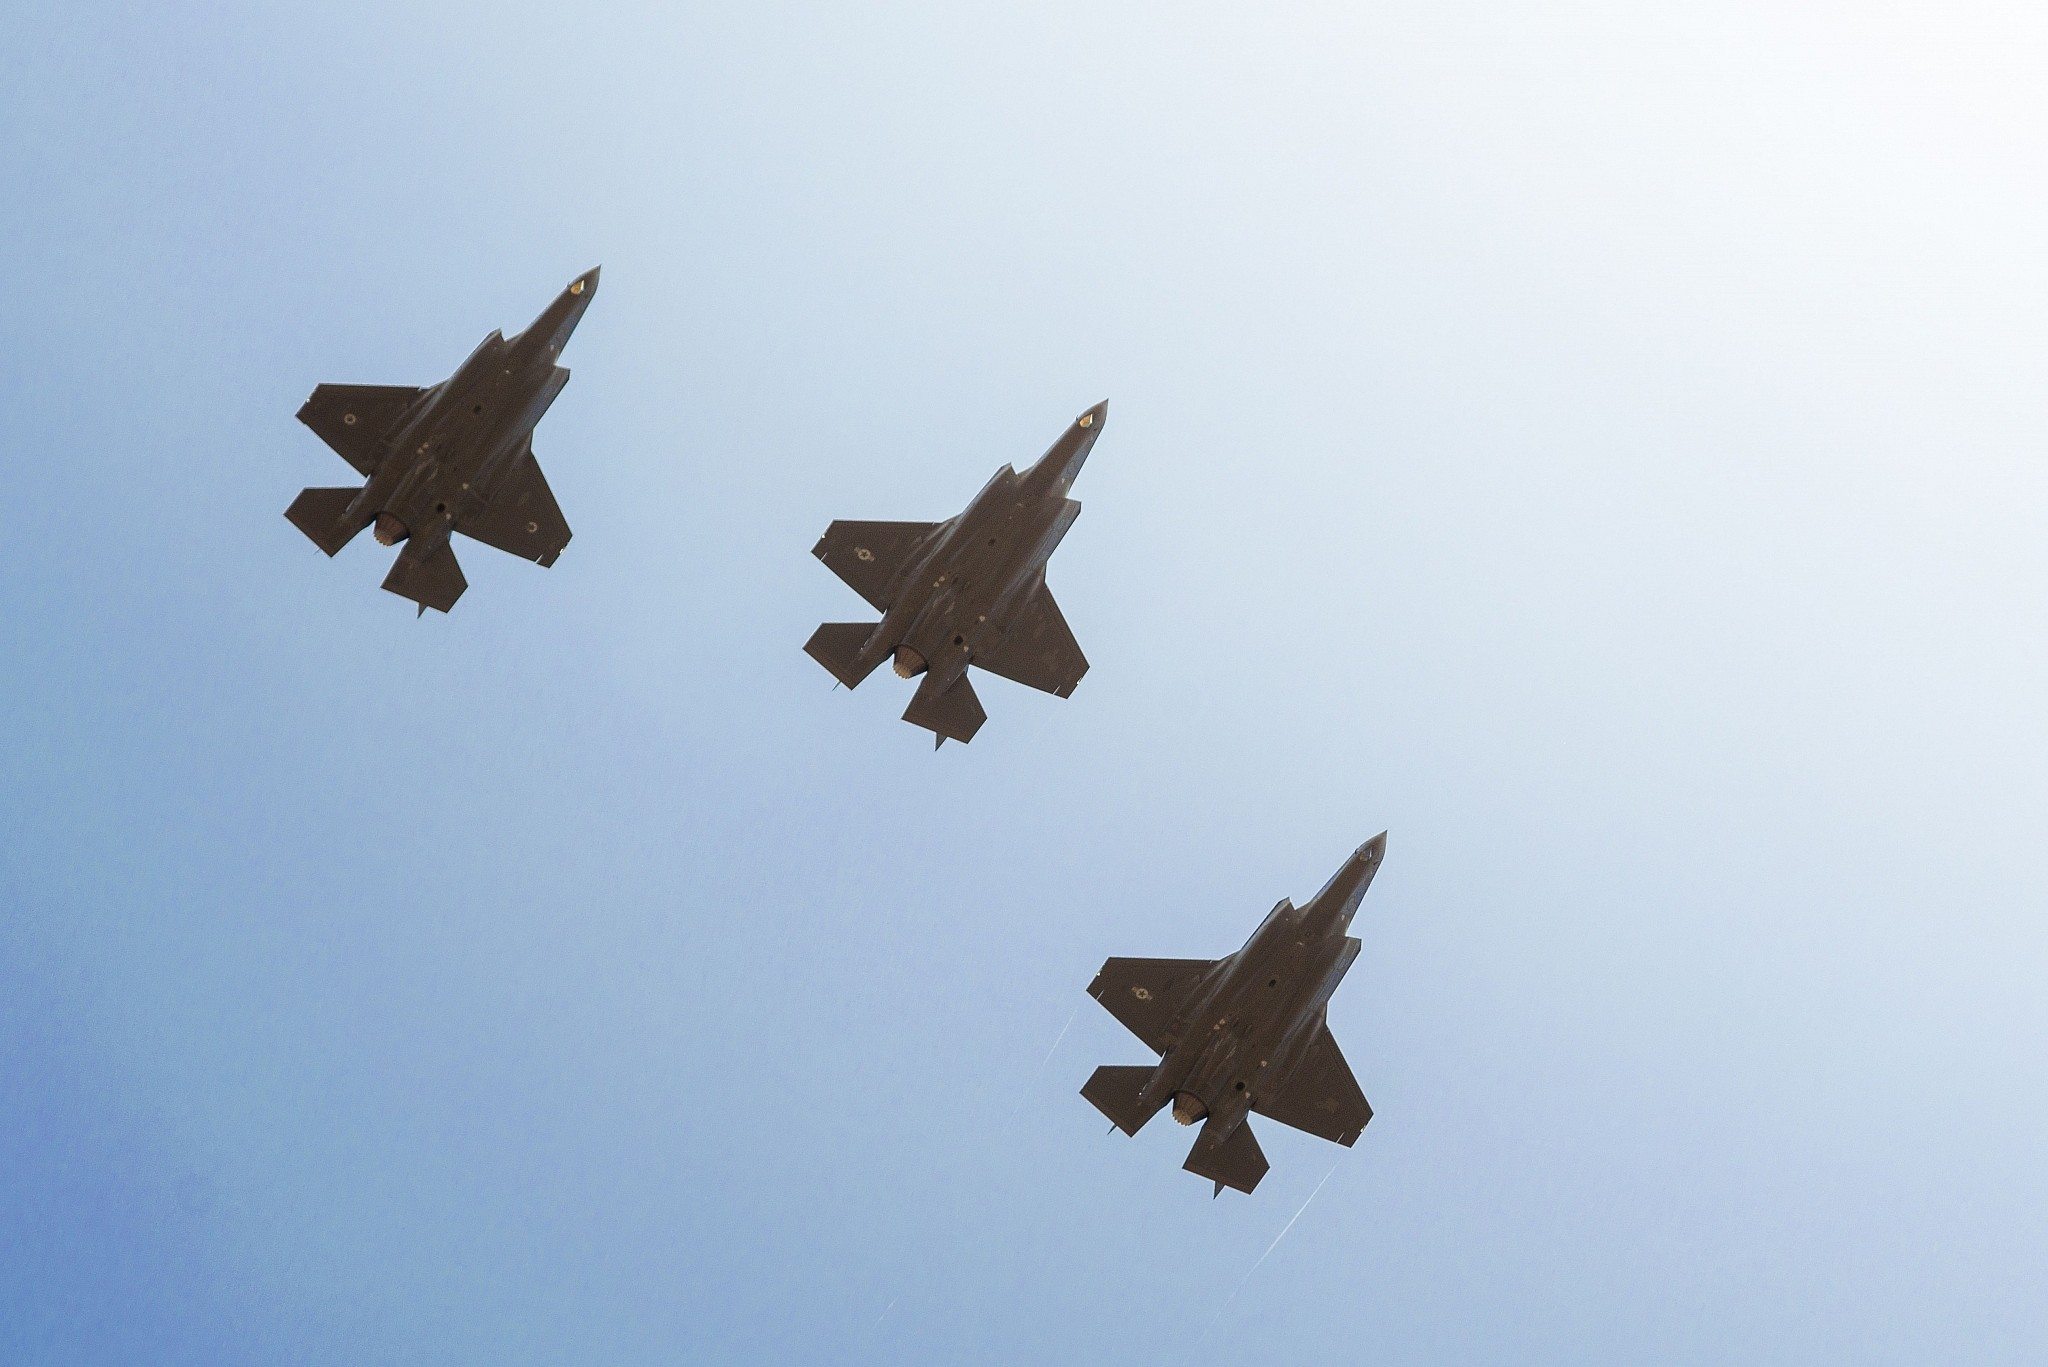 Israel Operationalizes First Set of F-35 Fighter Jets